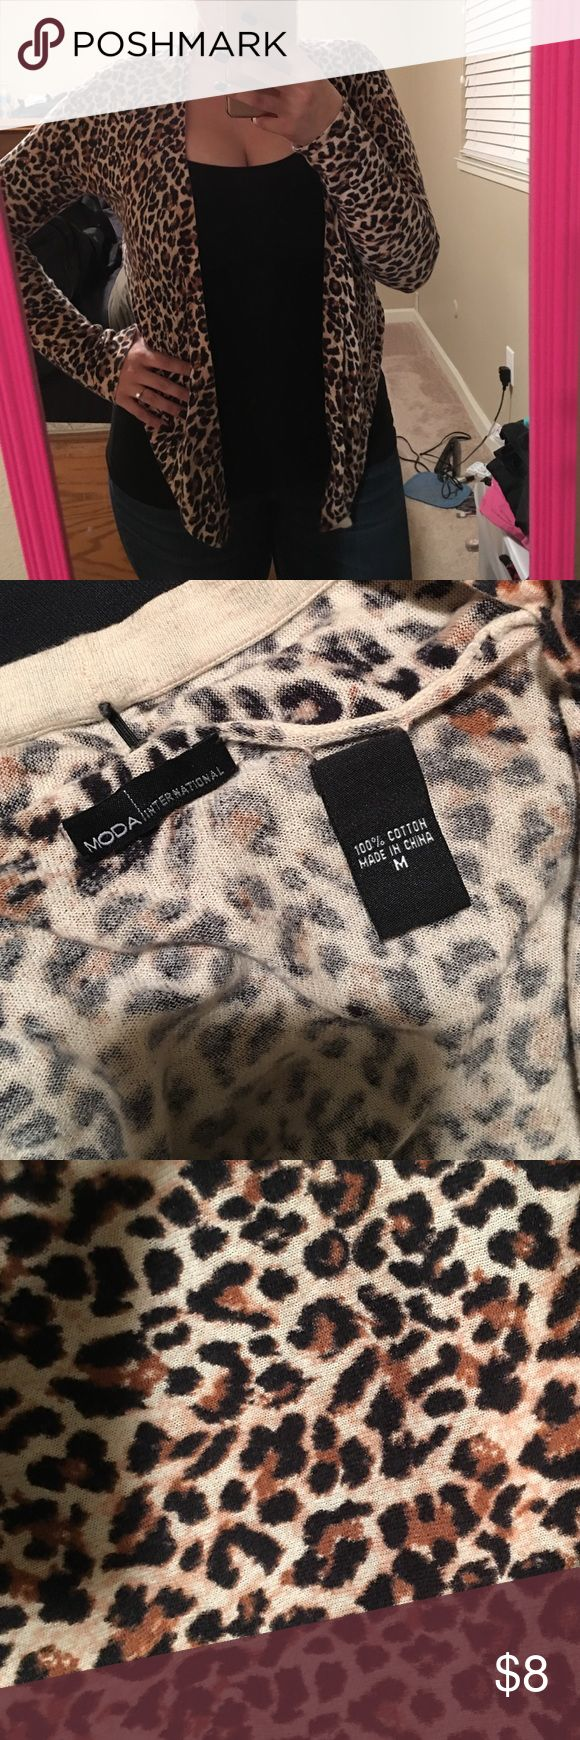 Cheetah print cardigan Ordered from the Victoria secret website. Worn multiple times. Really cute! Moda International Sweaters Cardigans